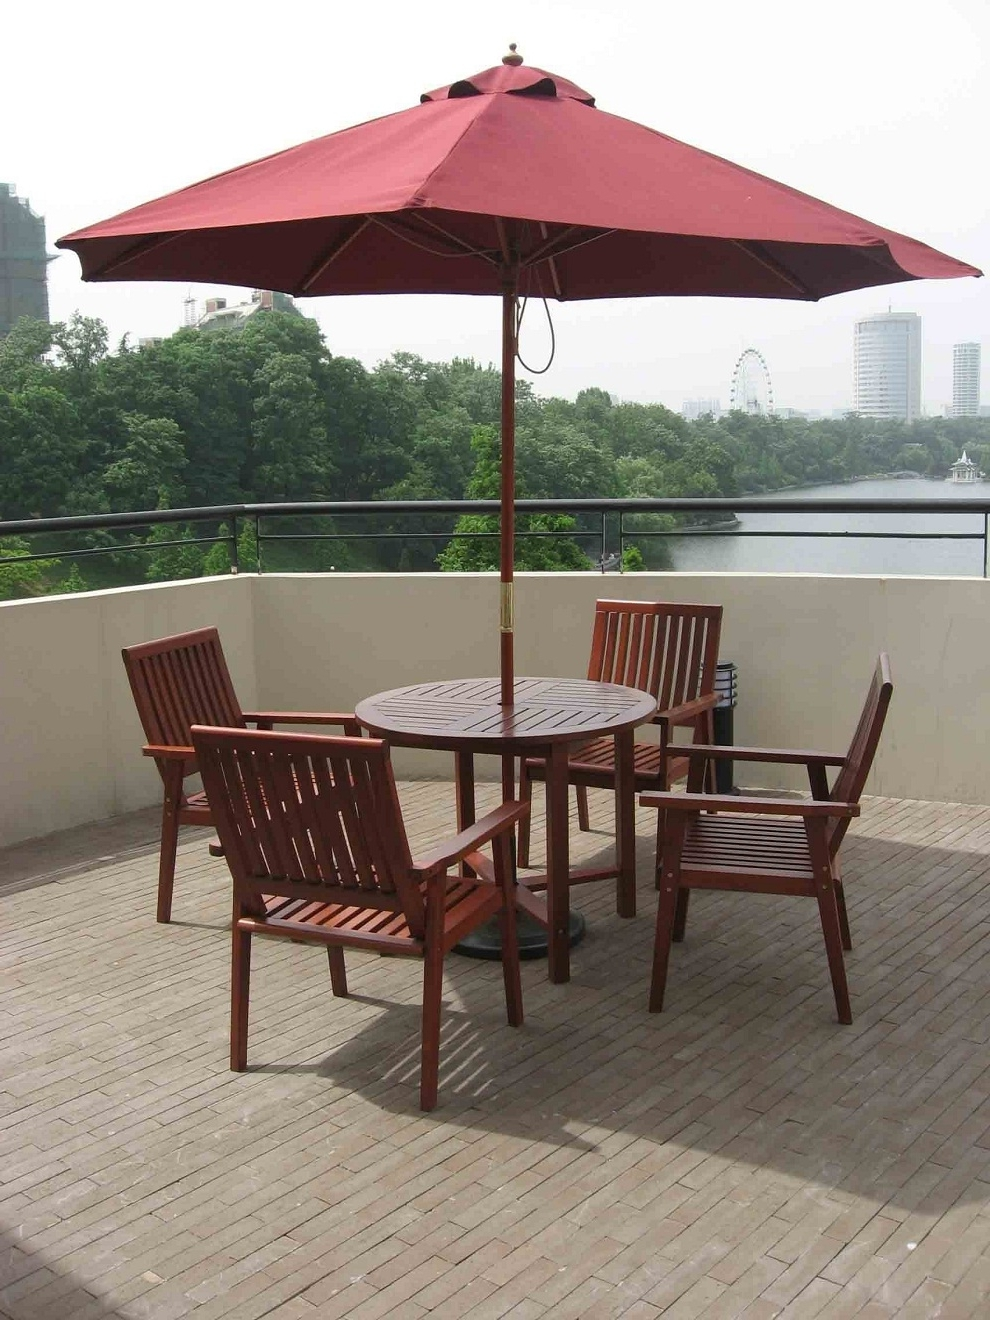 Fashionable Patio Surprising Table With Umbrella Small Tables For Rent In Los Within Patio Umbrellas For Rent (View 4 of 20)